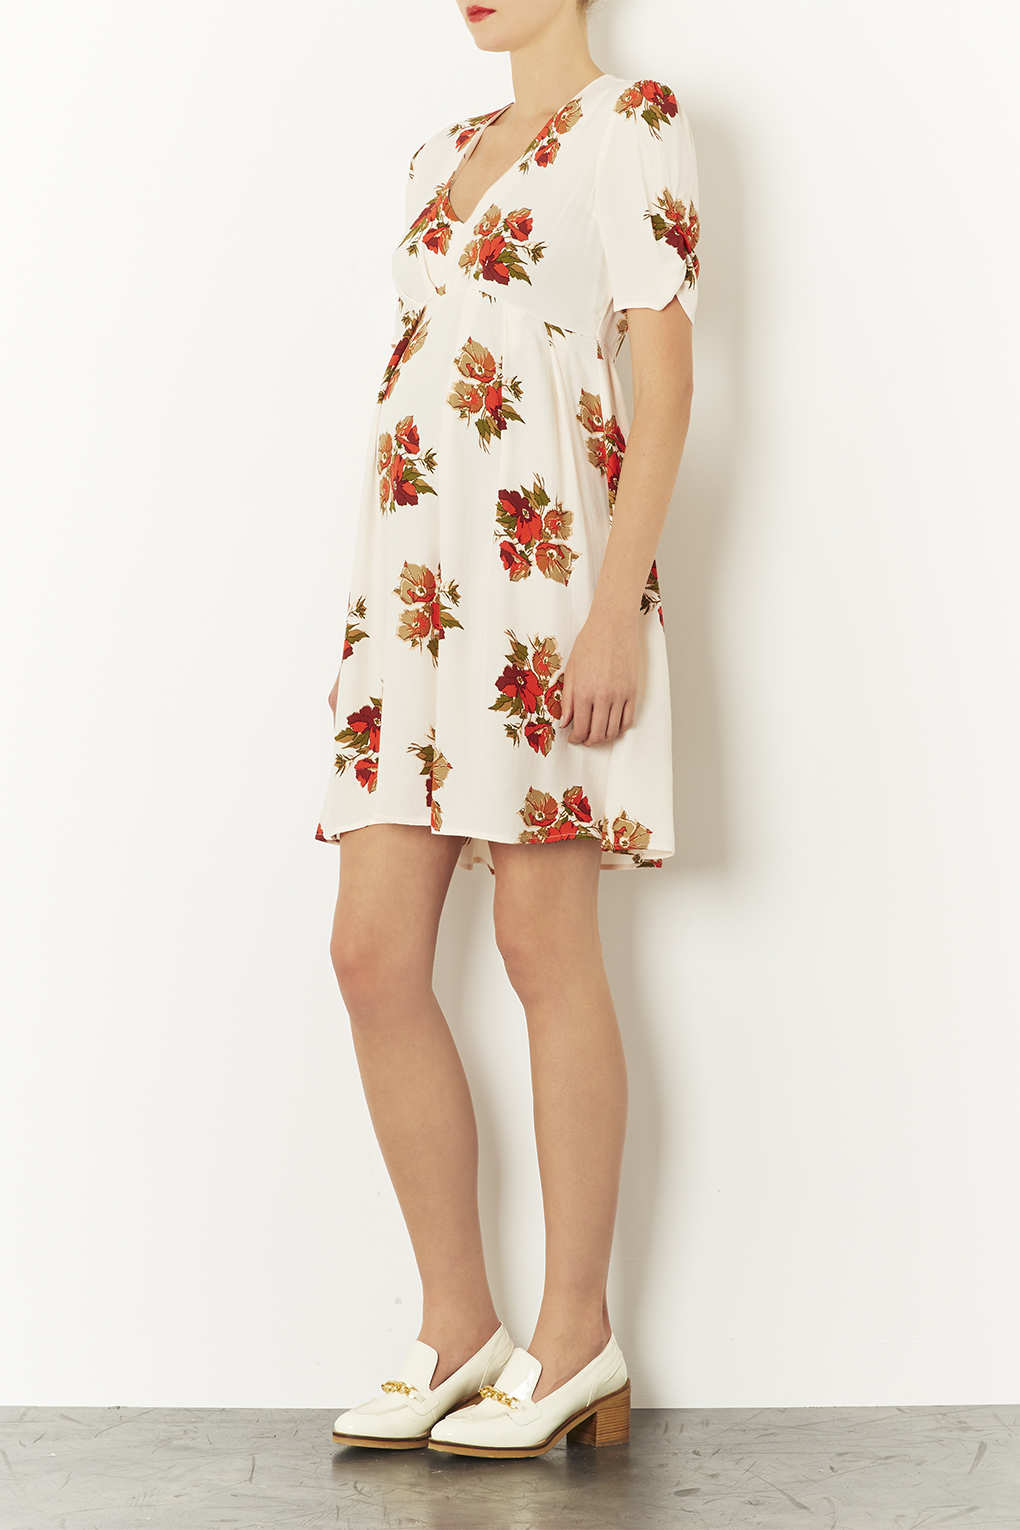 Lyst Topshop Maternity Autumn Floral Dress In Natural